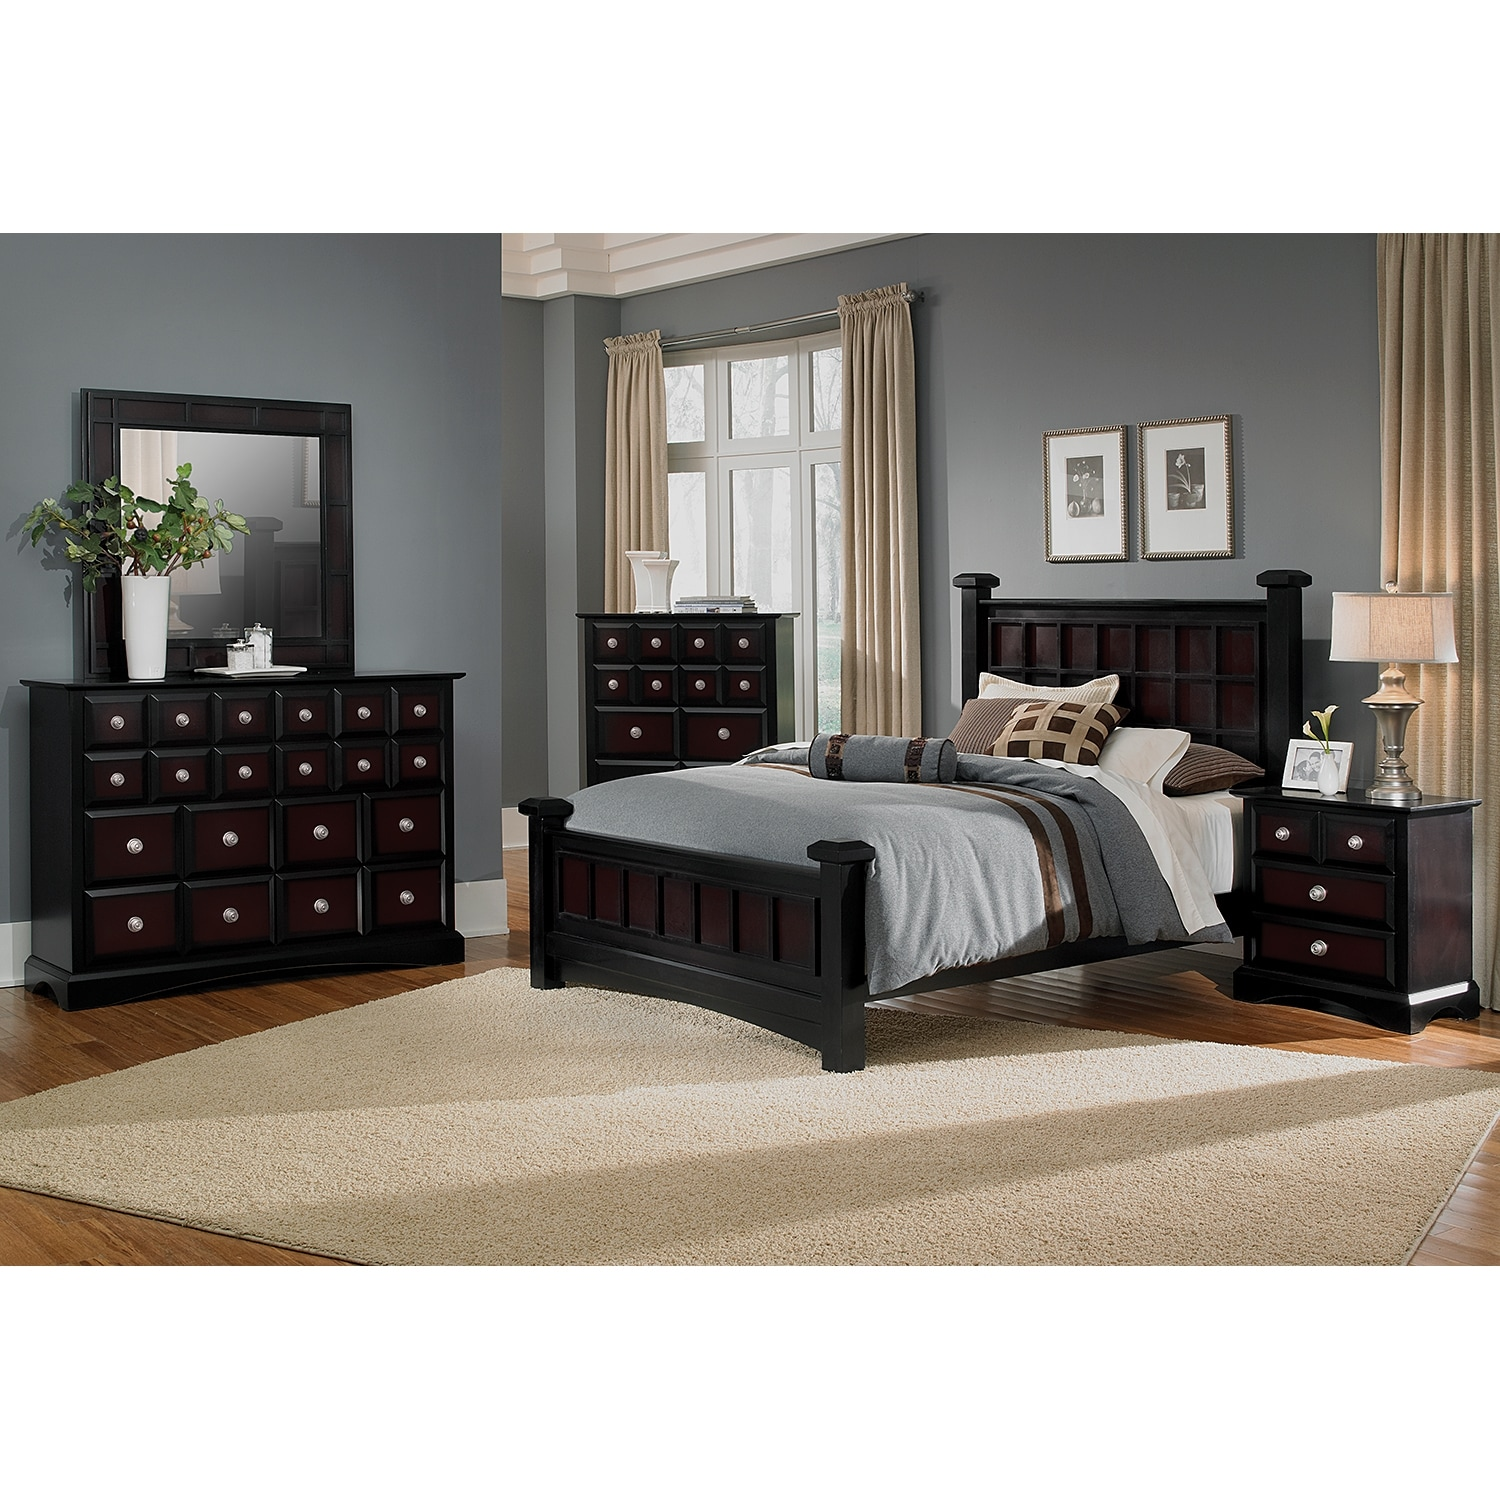 Winchester 5 Piece Queen Bedroom Set: Winchester 6-Piece Queen Bedroom Set